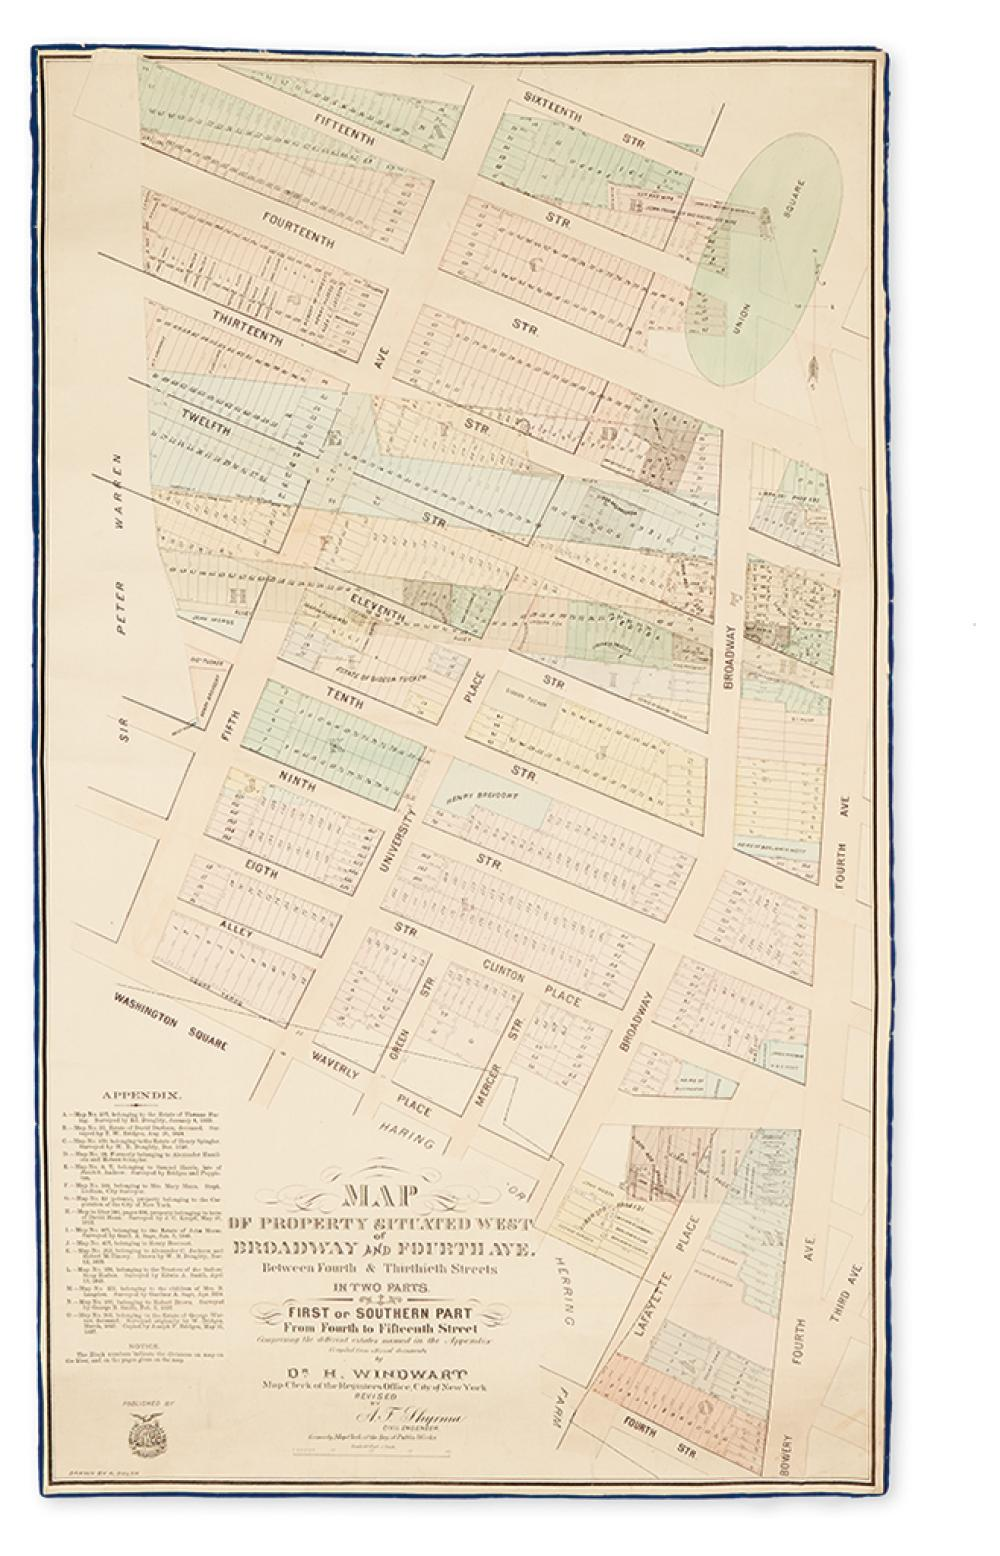 Cadastral Map Usa : New york city windwart dr h map of property situated w